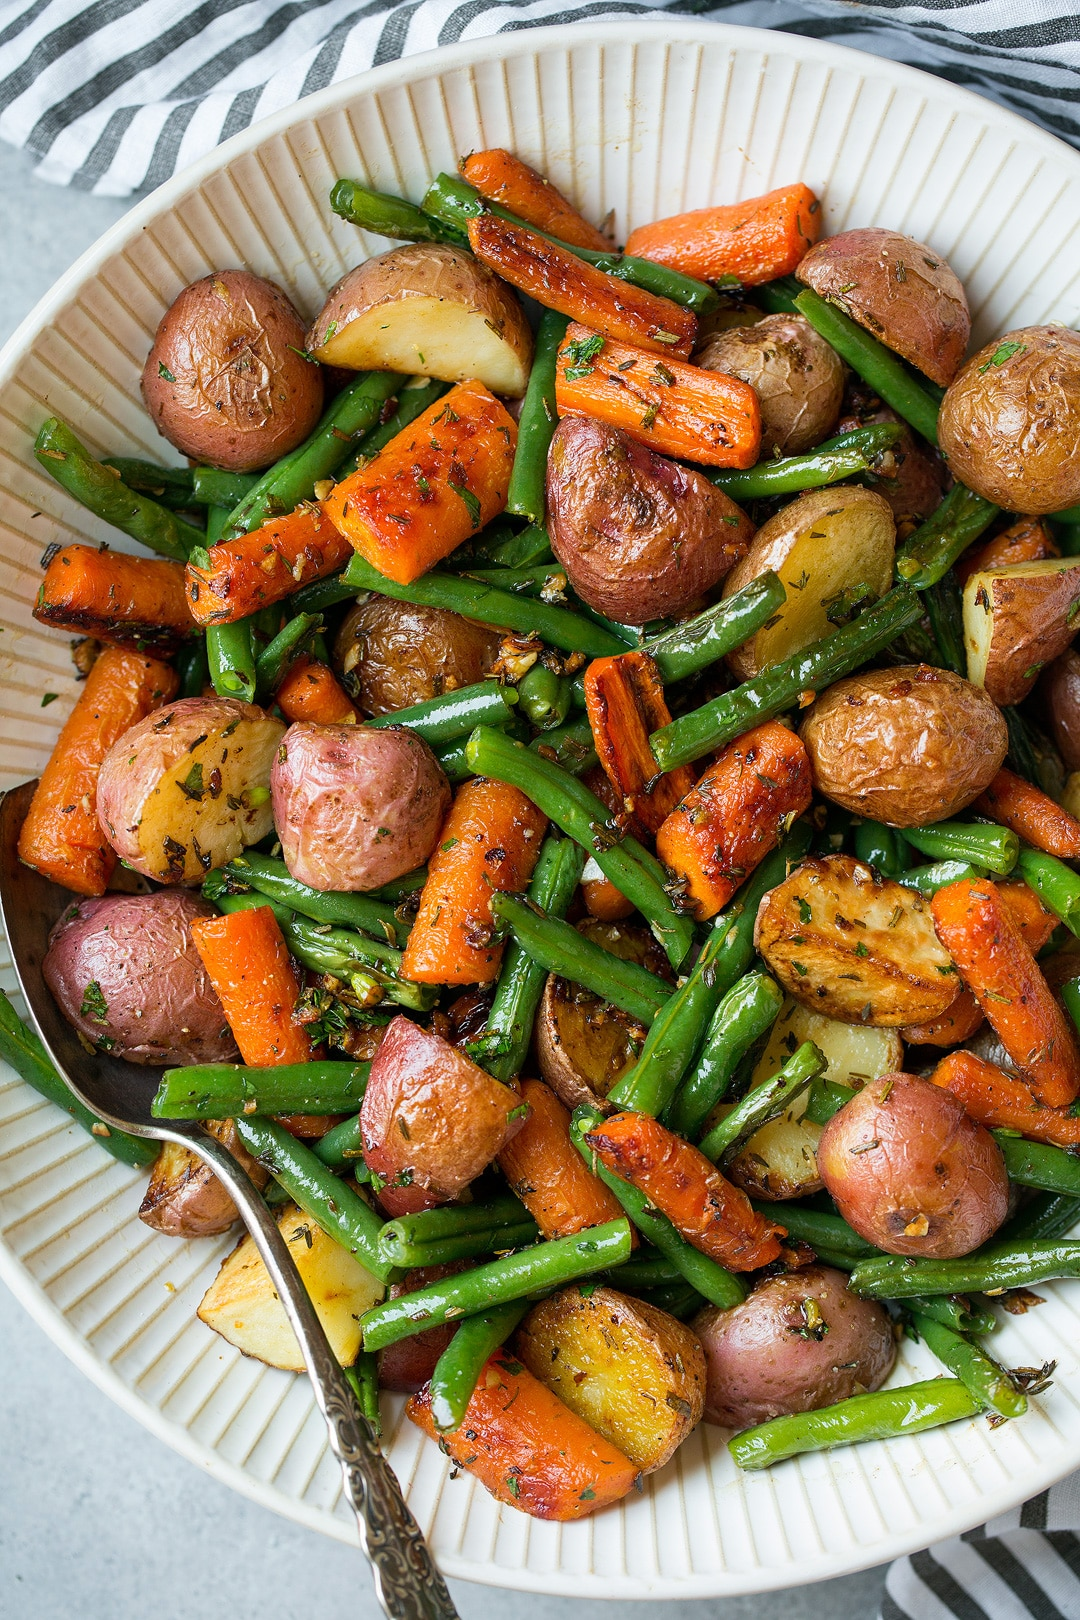 Roasted Vegetables with Garlic and Herbs Recipe